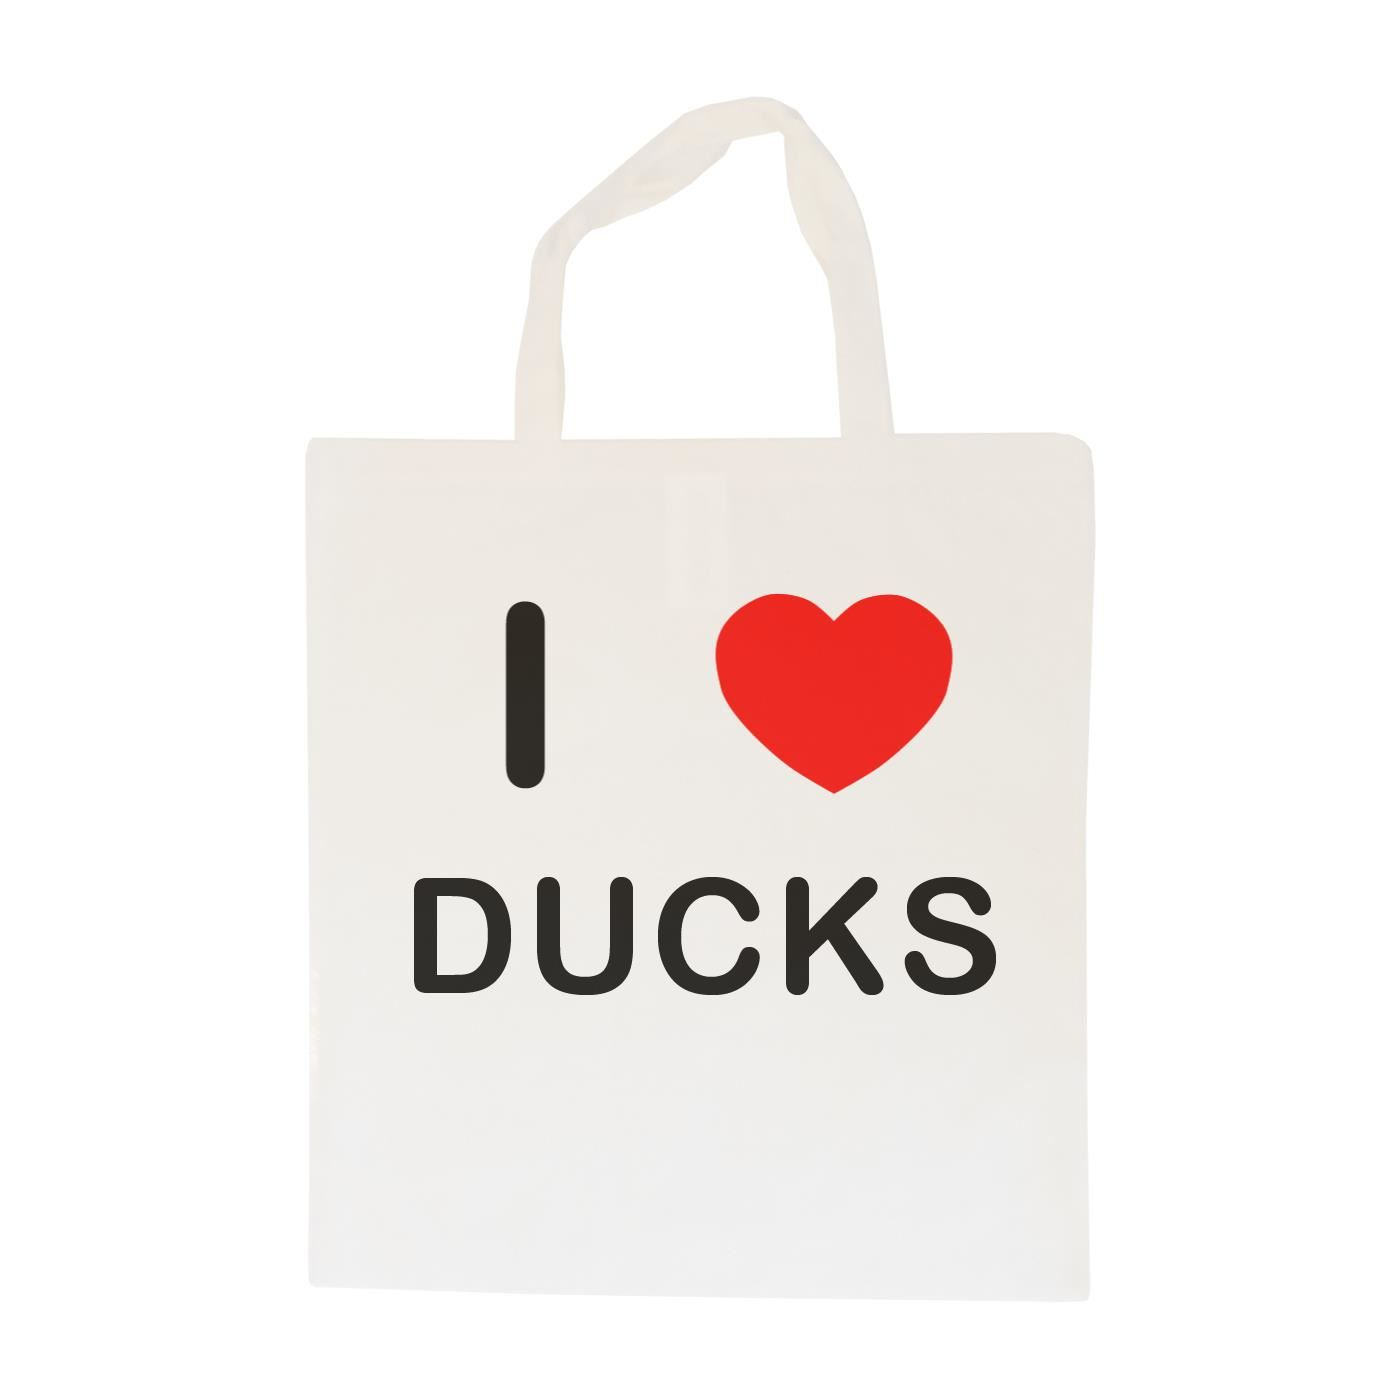 I Love Ducks - Cotton Bag | Size choice Tote, Shopper or Sling